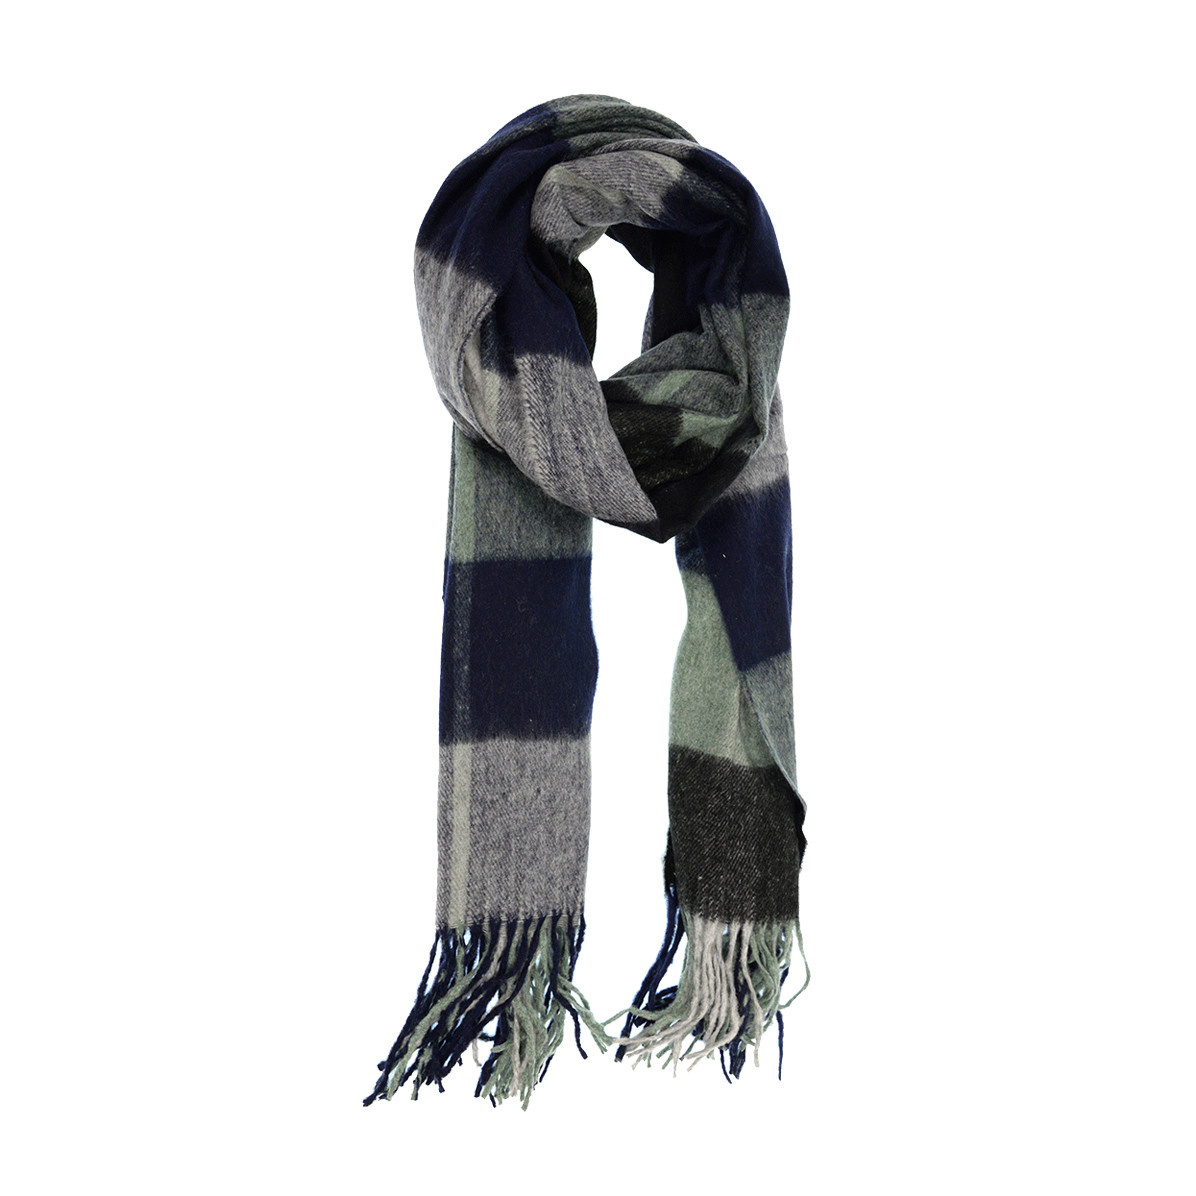 Joy Susan Joy Susan Plaid Scarf Navy Jade